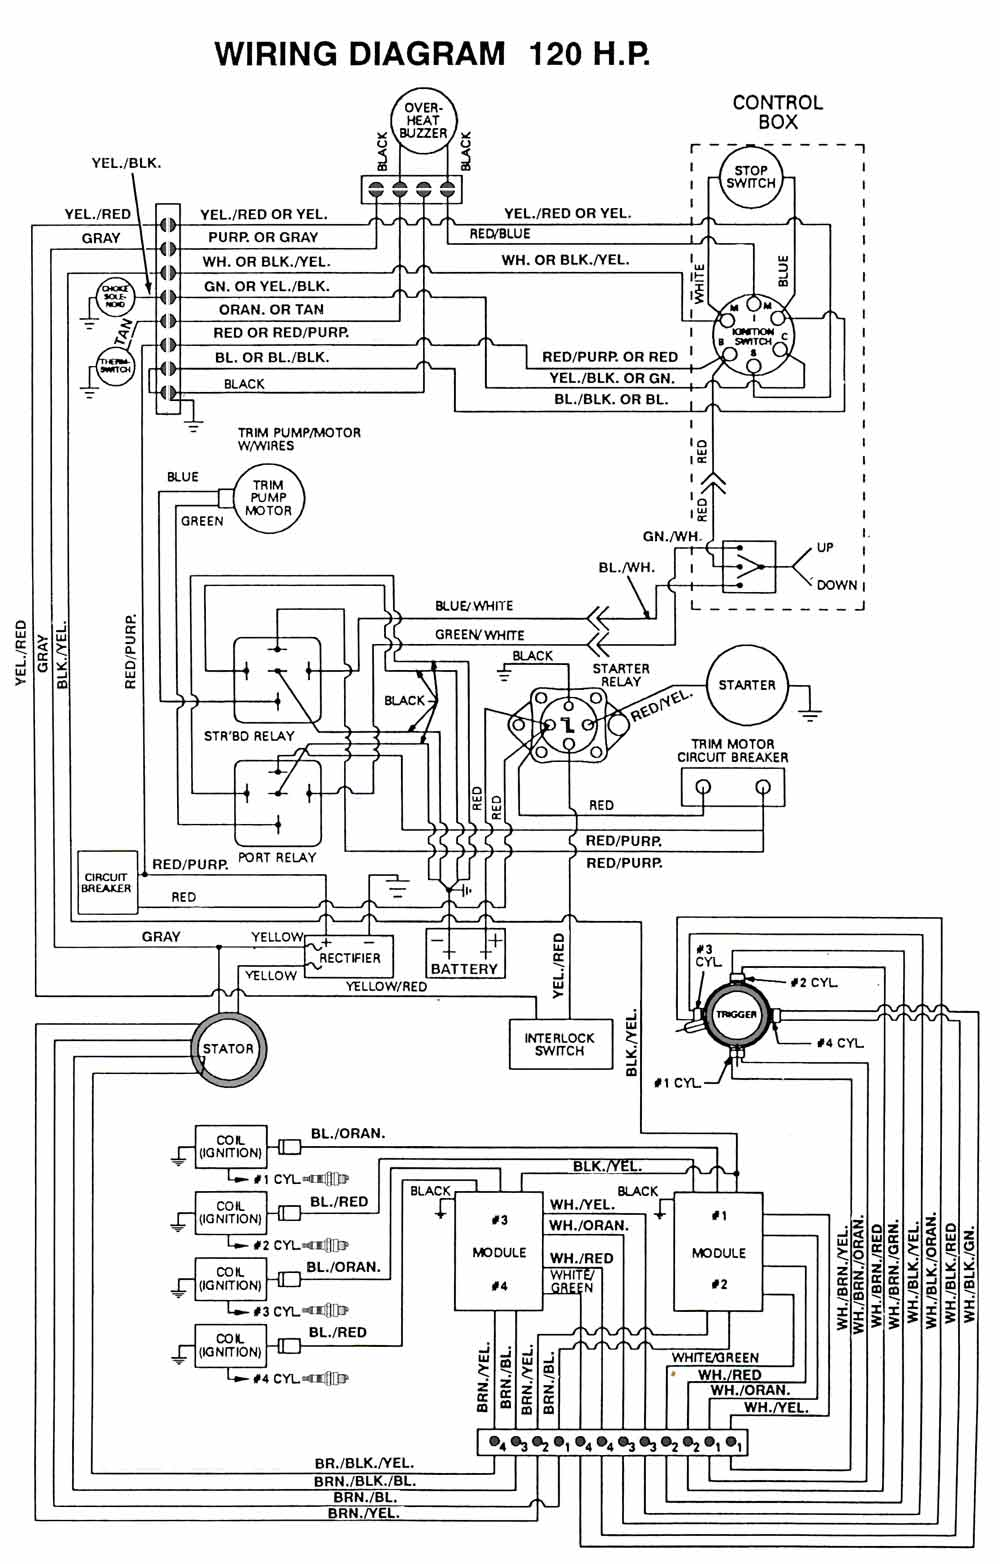 1974 Mercruiser Wiring Diagram Library For 75 Mercury Optimax Simple Engine 1997